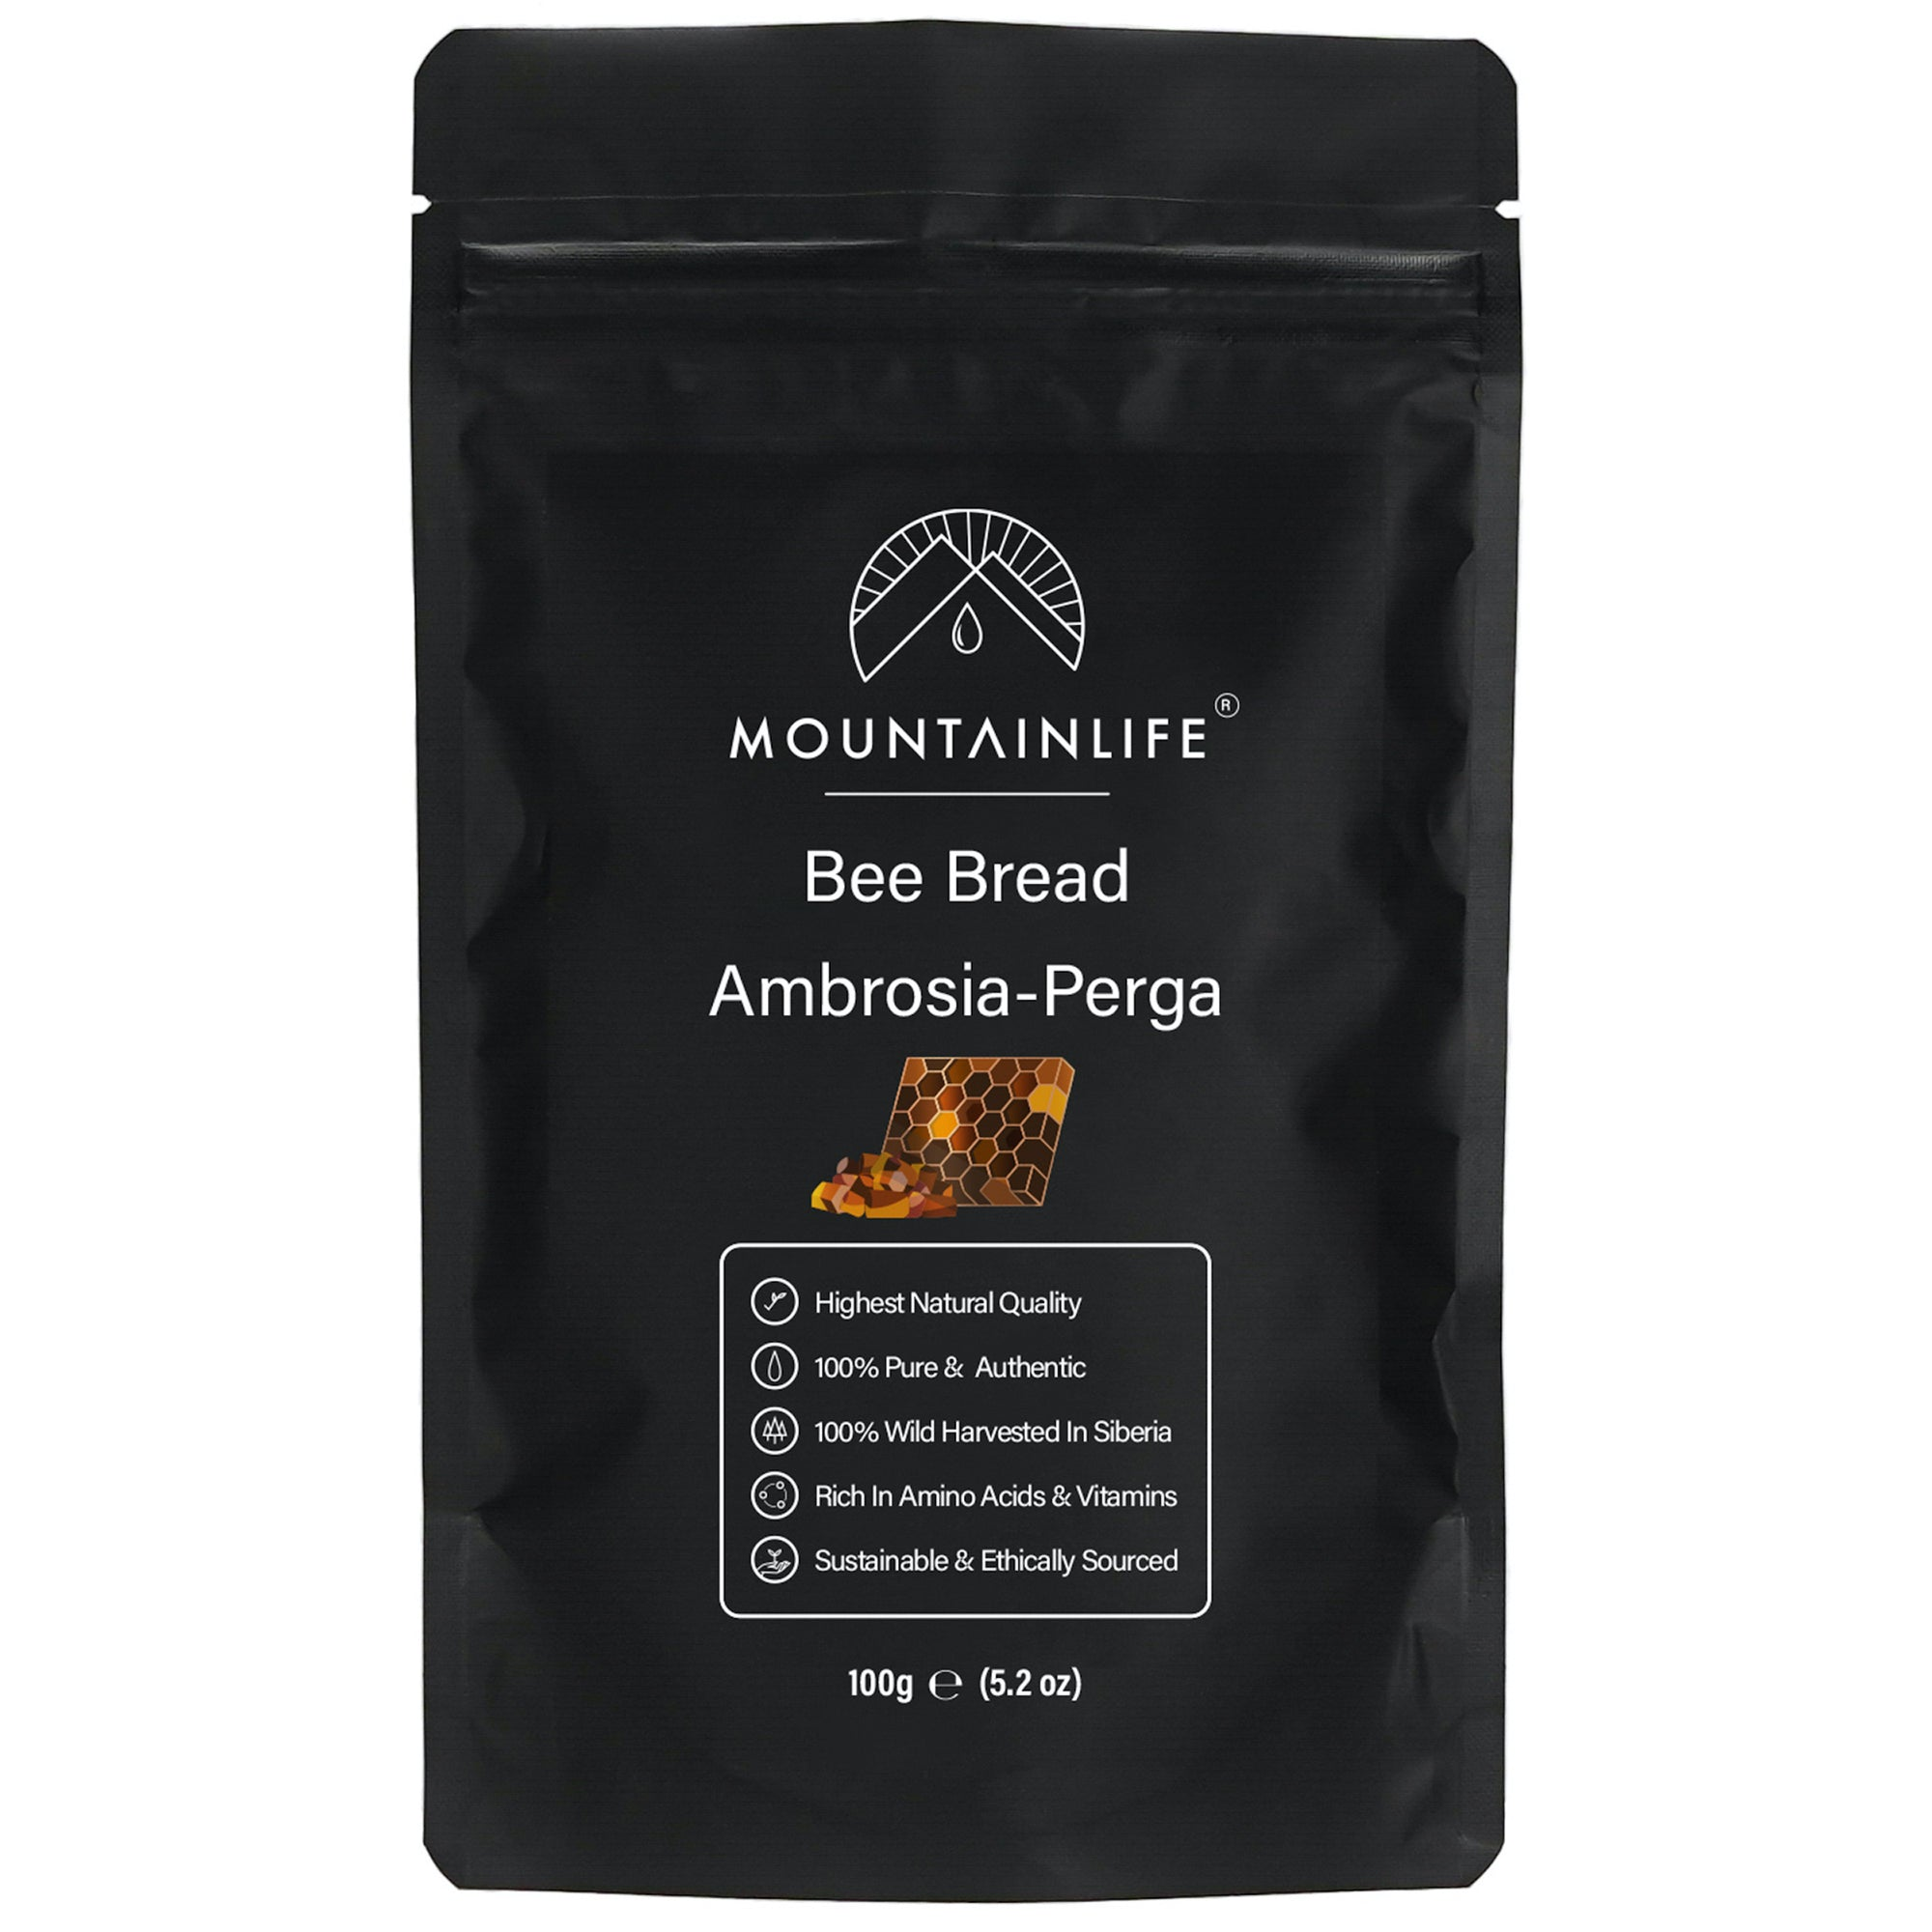 Mountainlife health Bee Bread Ambrosia/Perga 100g food supplement pouch